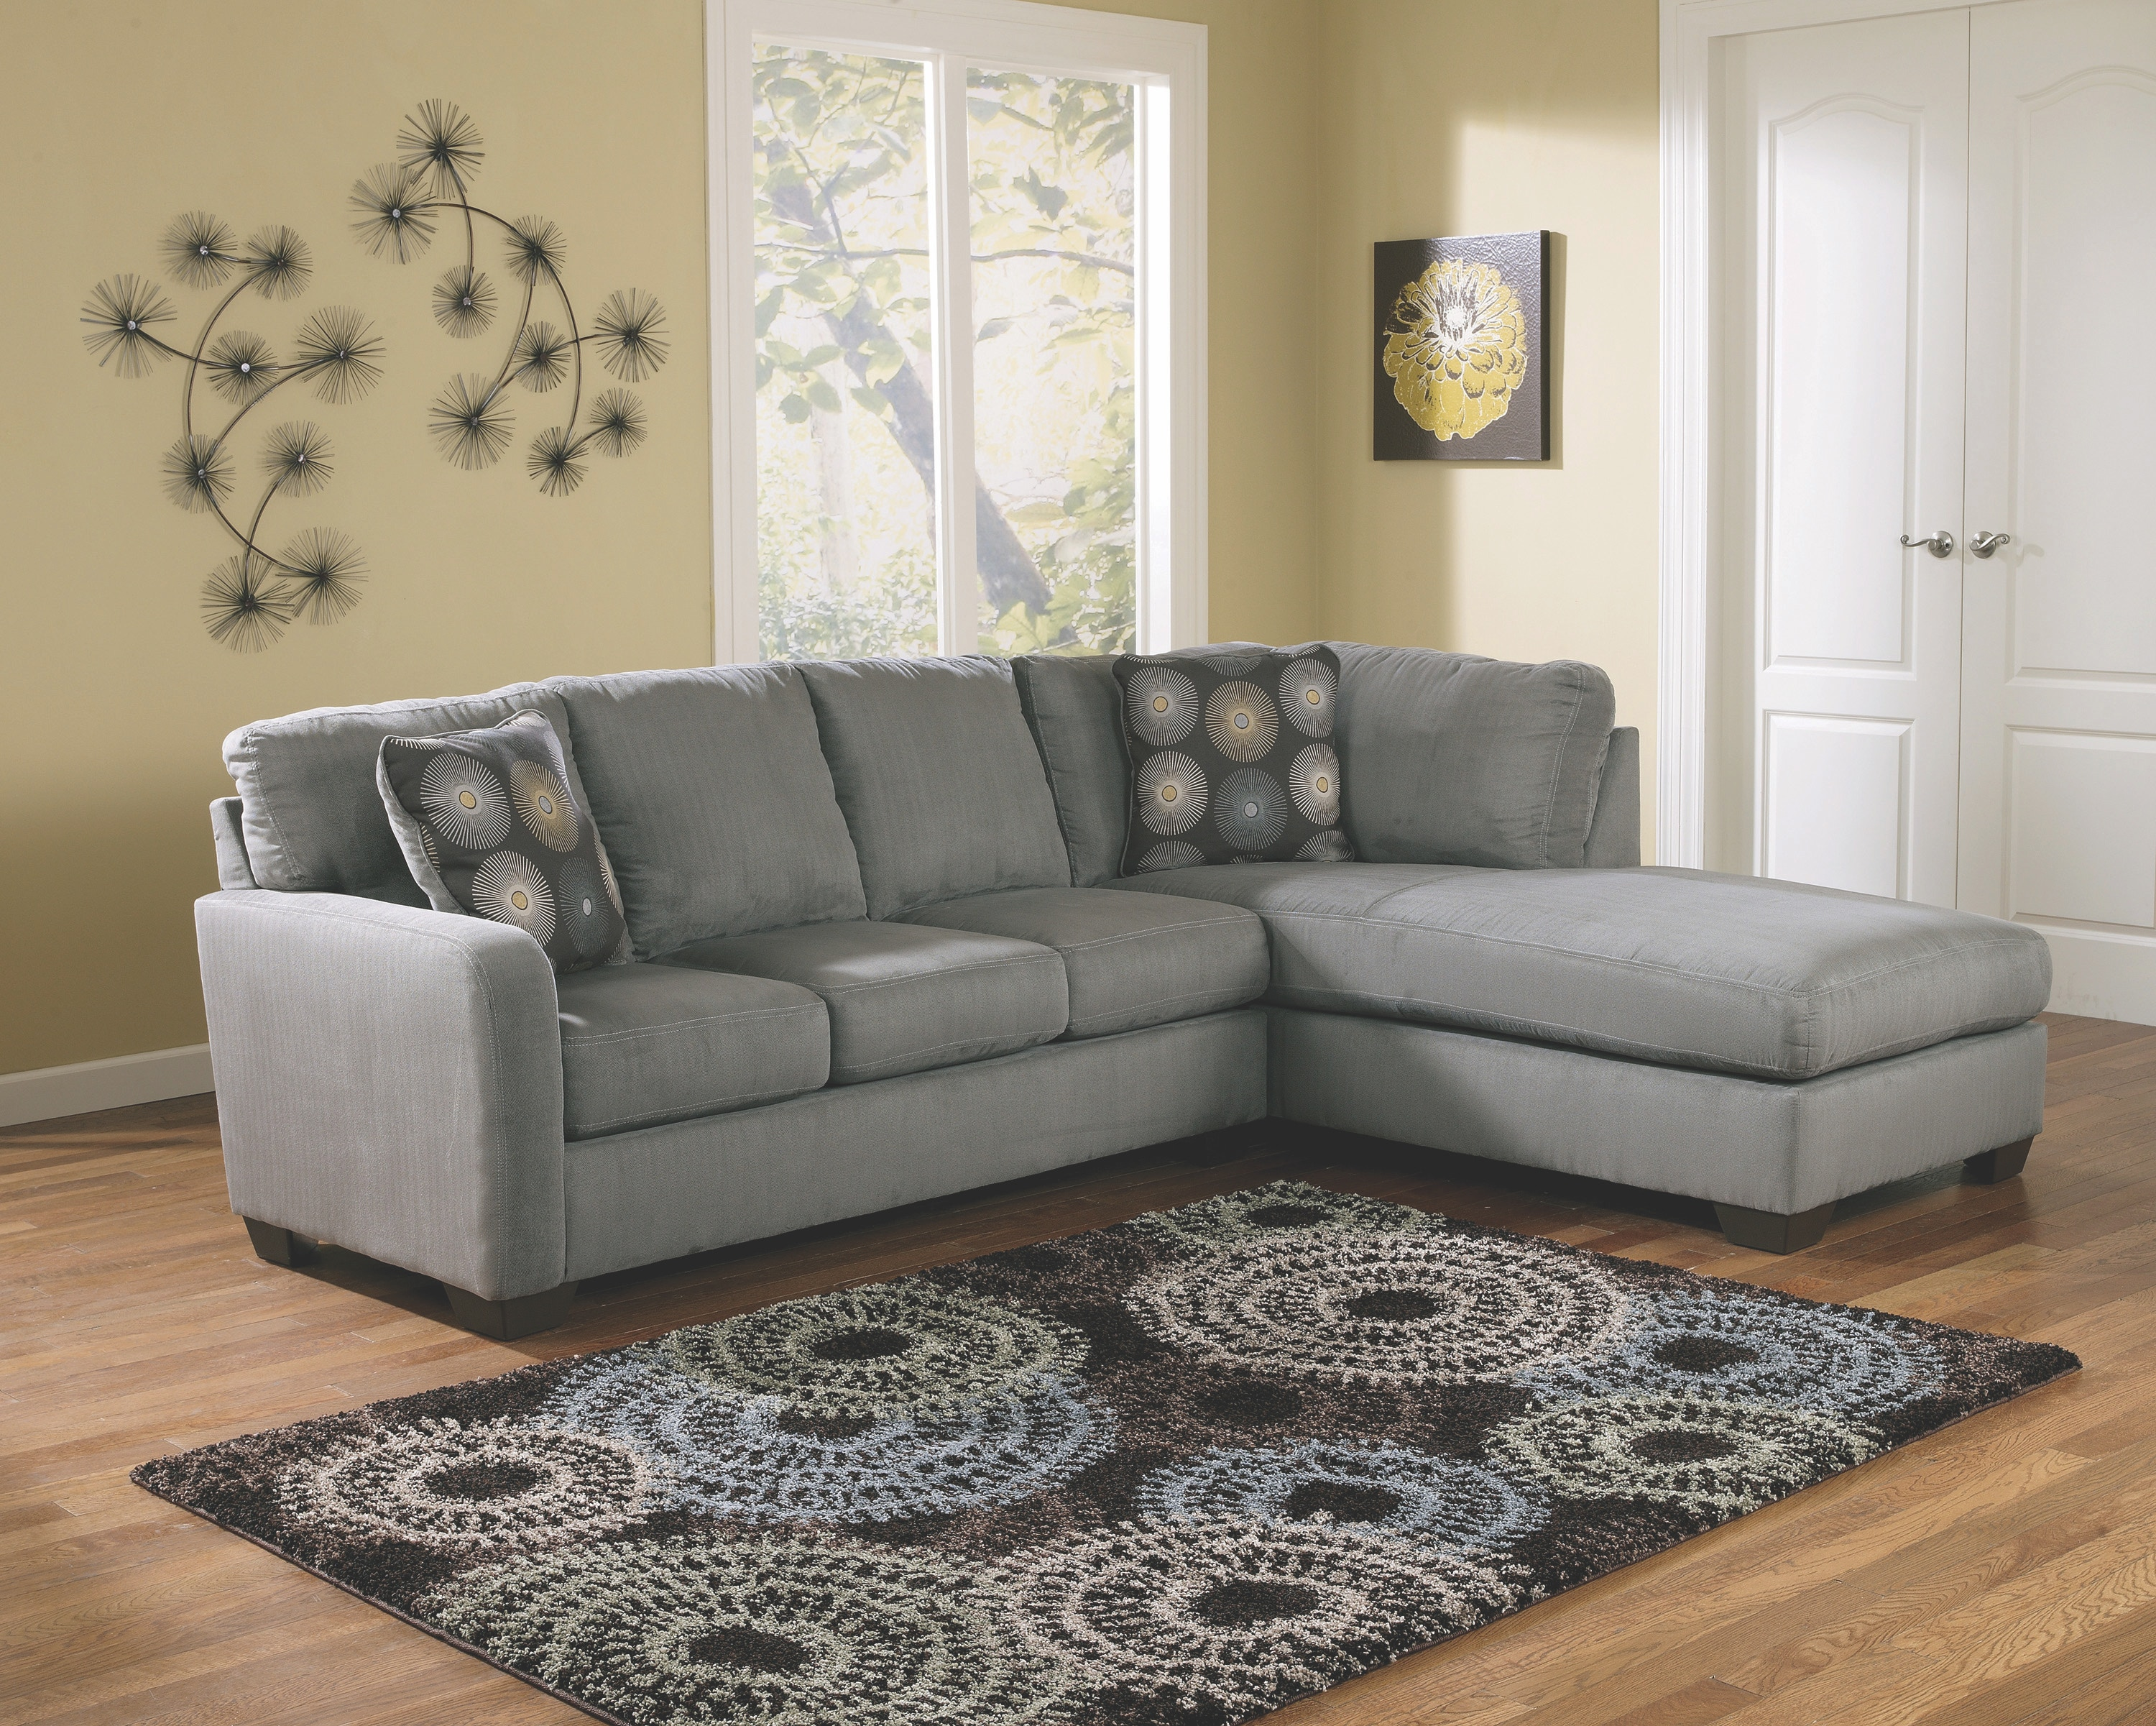 sutton sectional mn shaped and sofas u pin shapes room rooms living